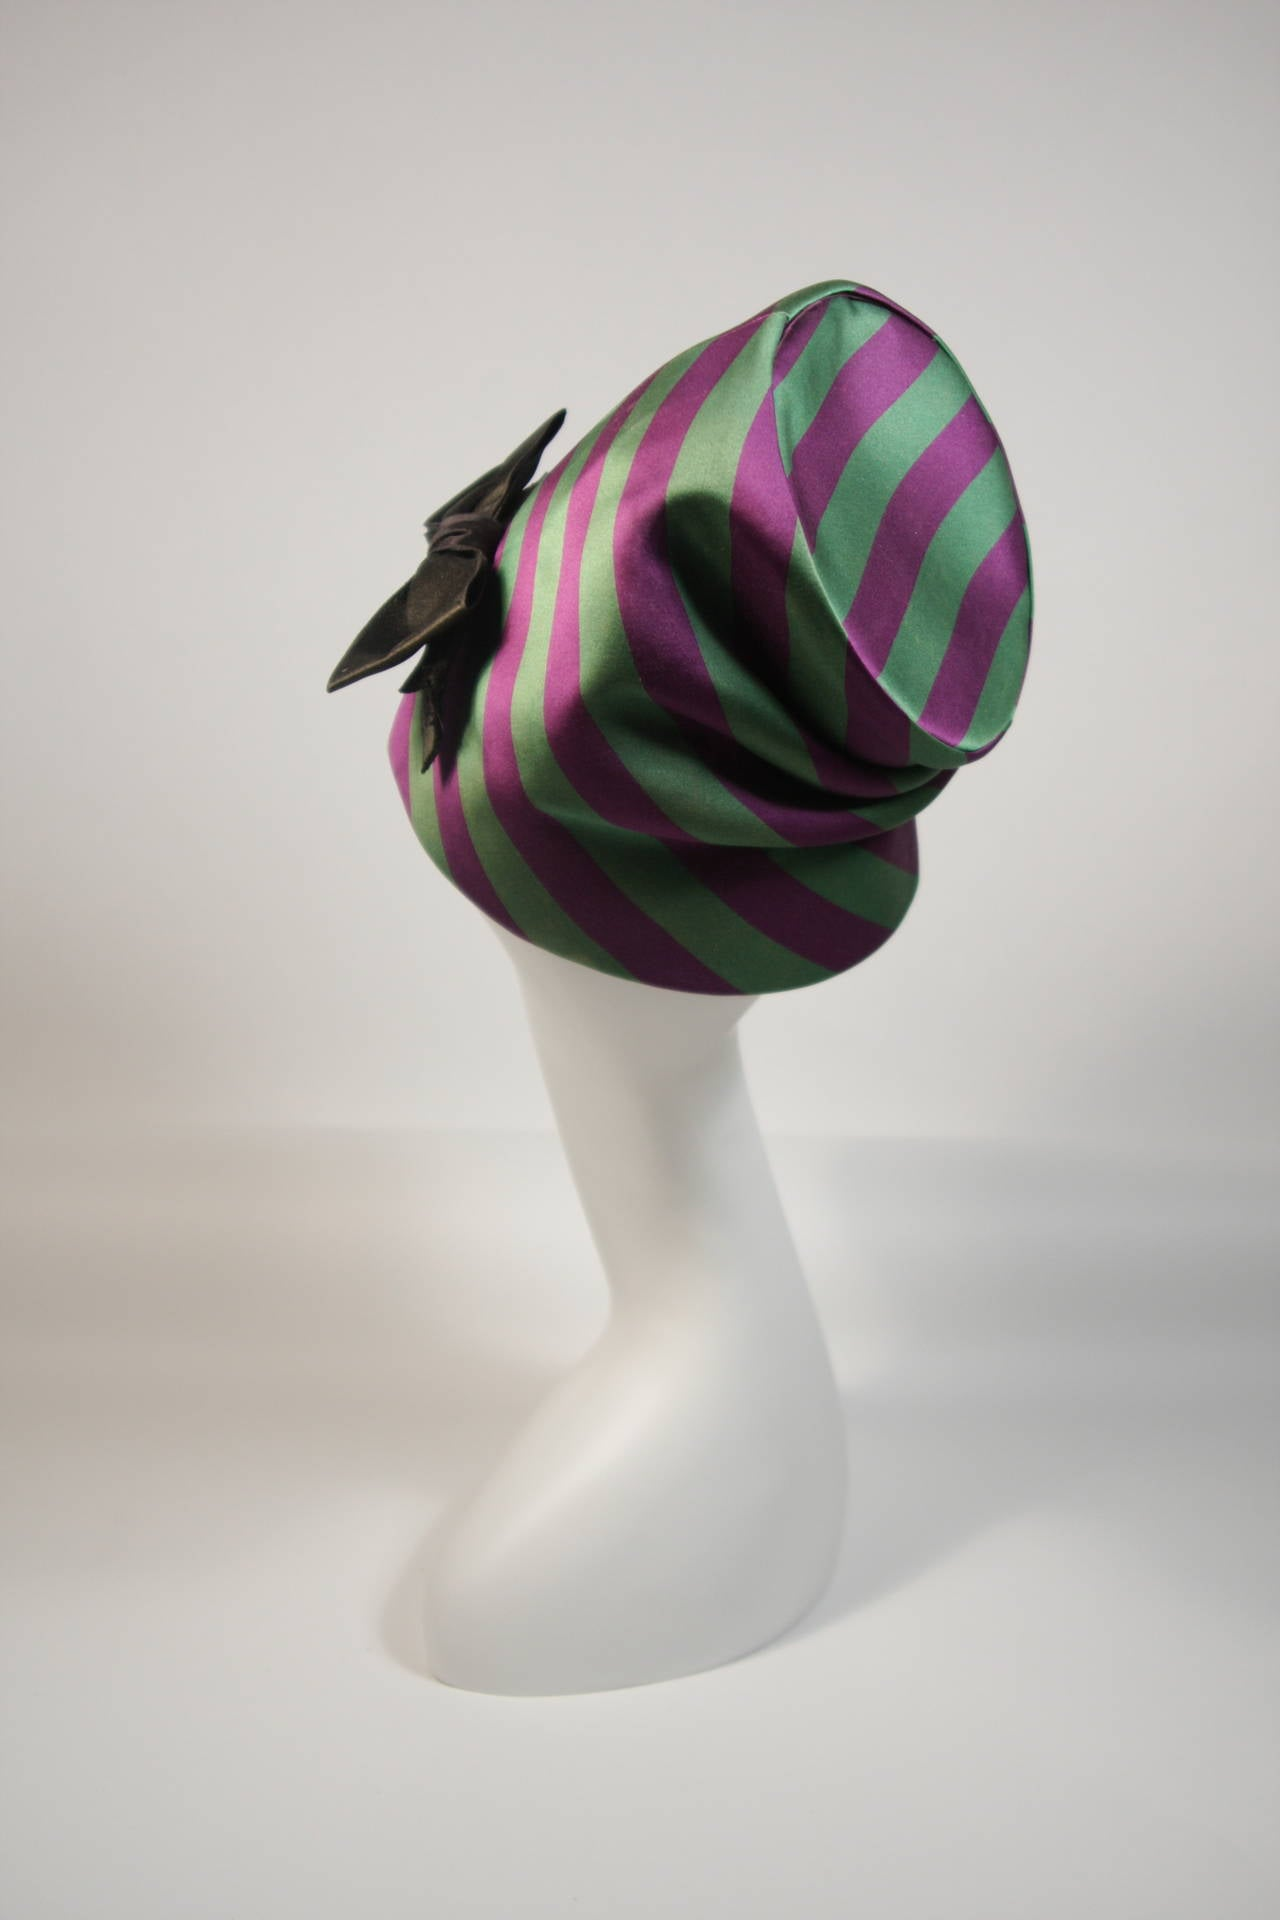 Yves Saint Laurent Rive Gauche Purple and Green Silk Rouched Hat with Bow 8